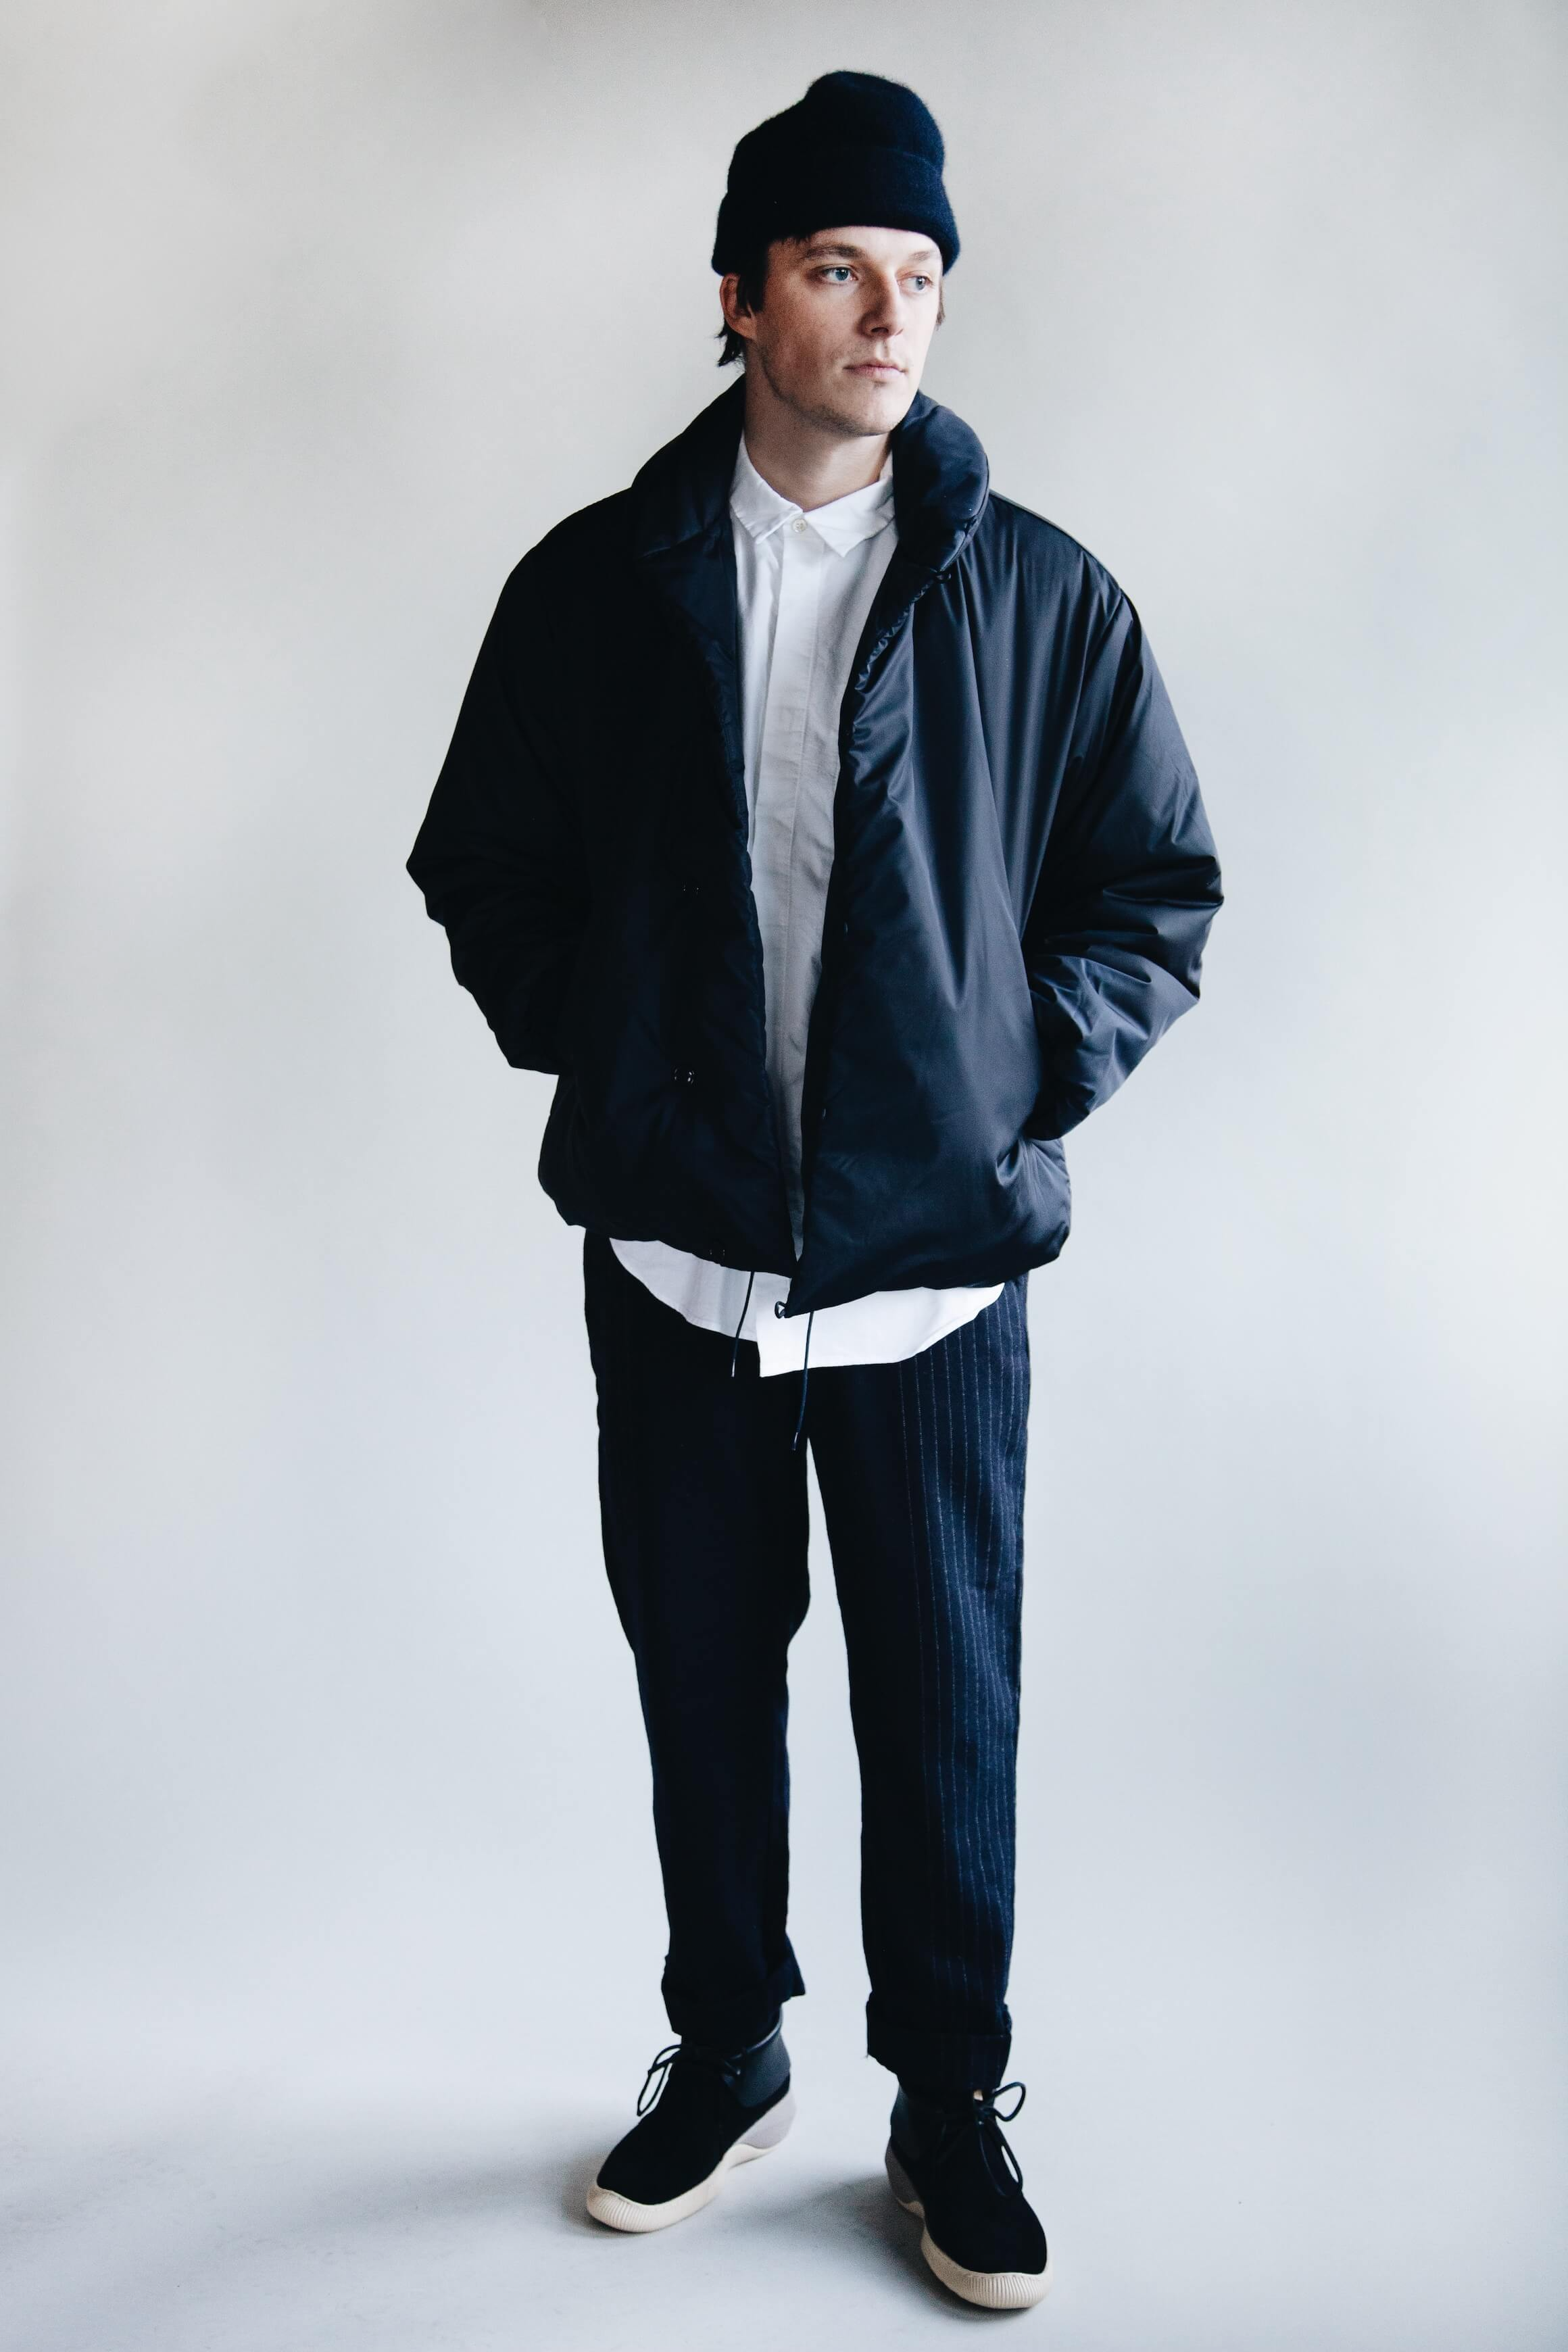 cableami cashmere beanie, arpenteur loft j. jacket, engineered garments short collar shirt and andover pants and visvim ute moc trainer shoes on body